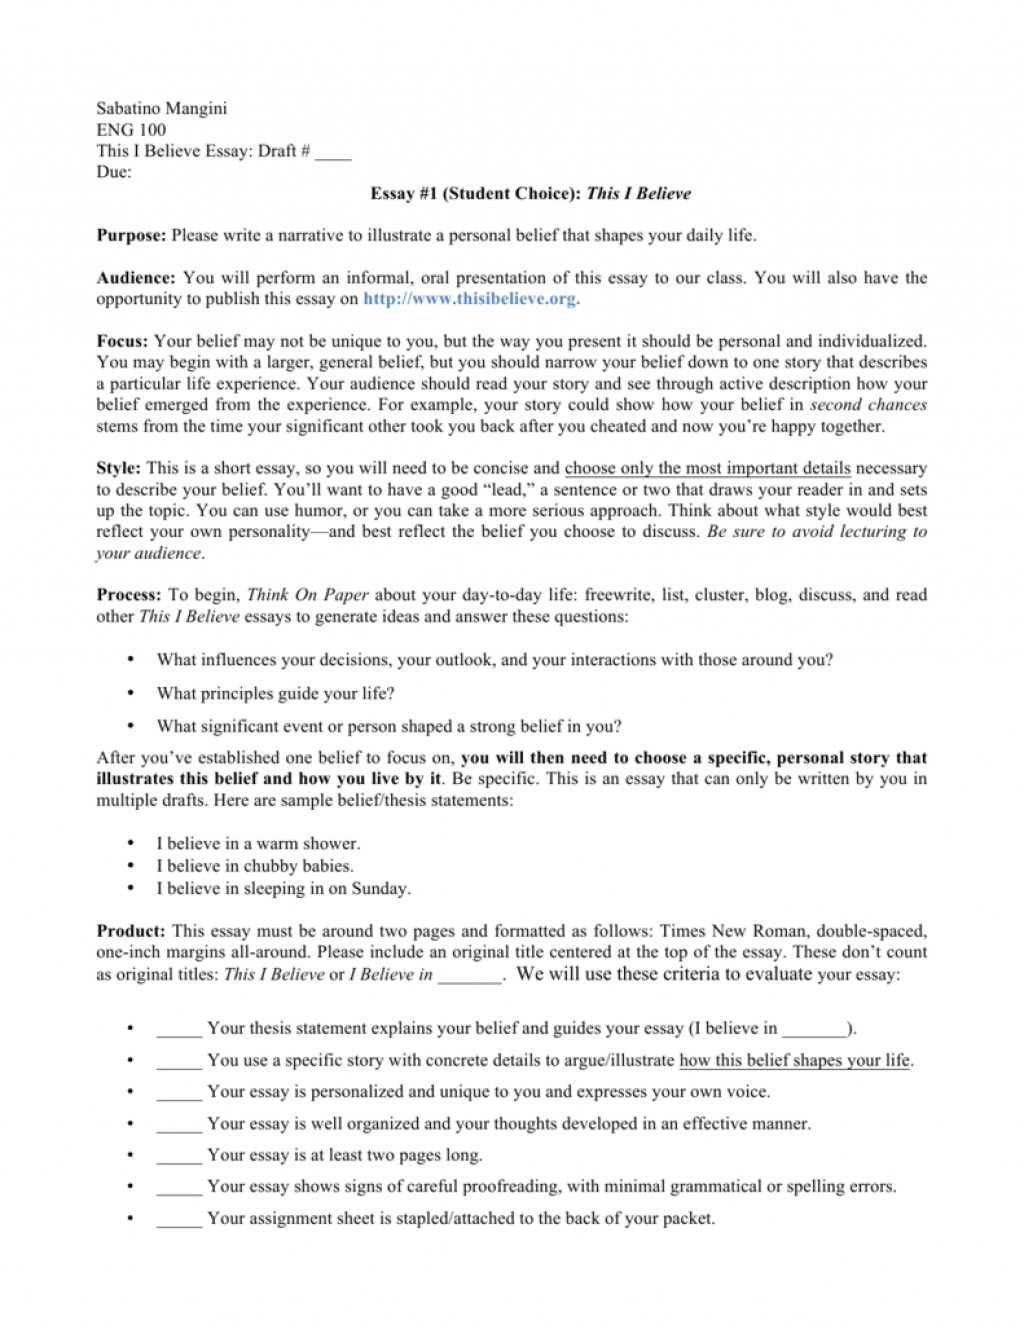 001 This I Believe Essay Example 008807227 1 Singular Rubric Essays Npr Format Large